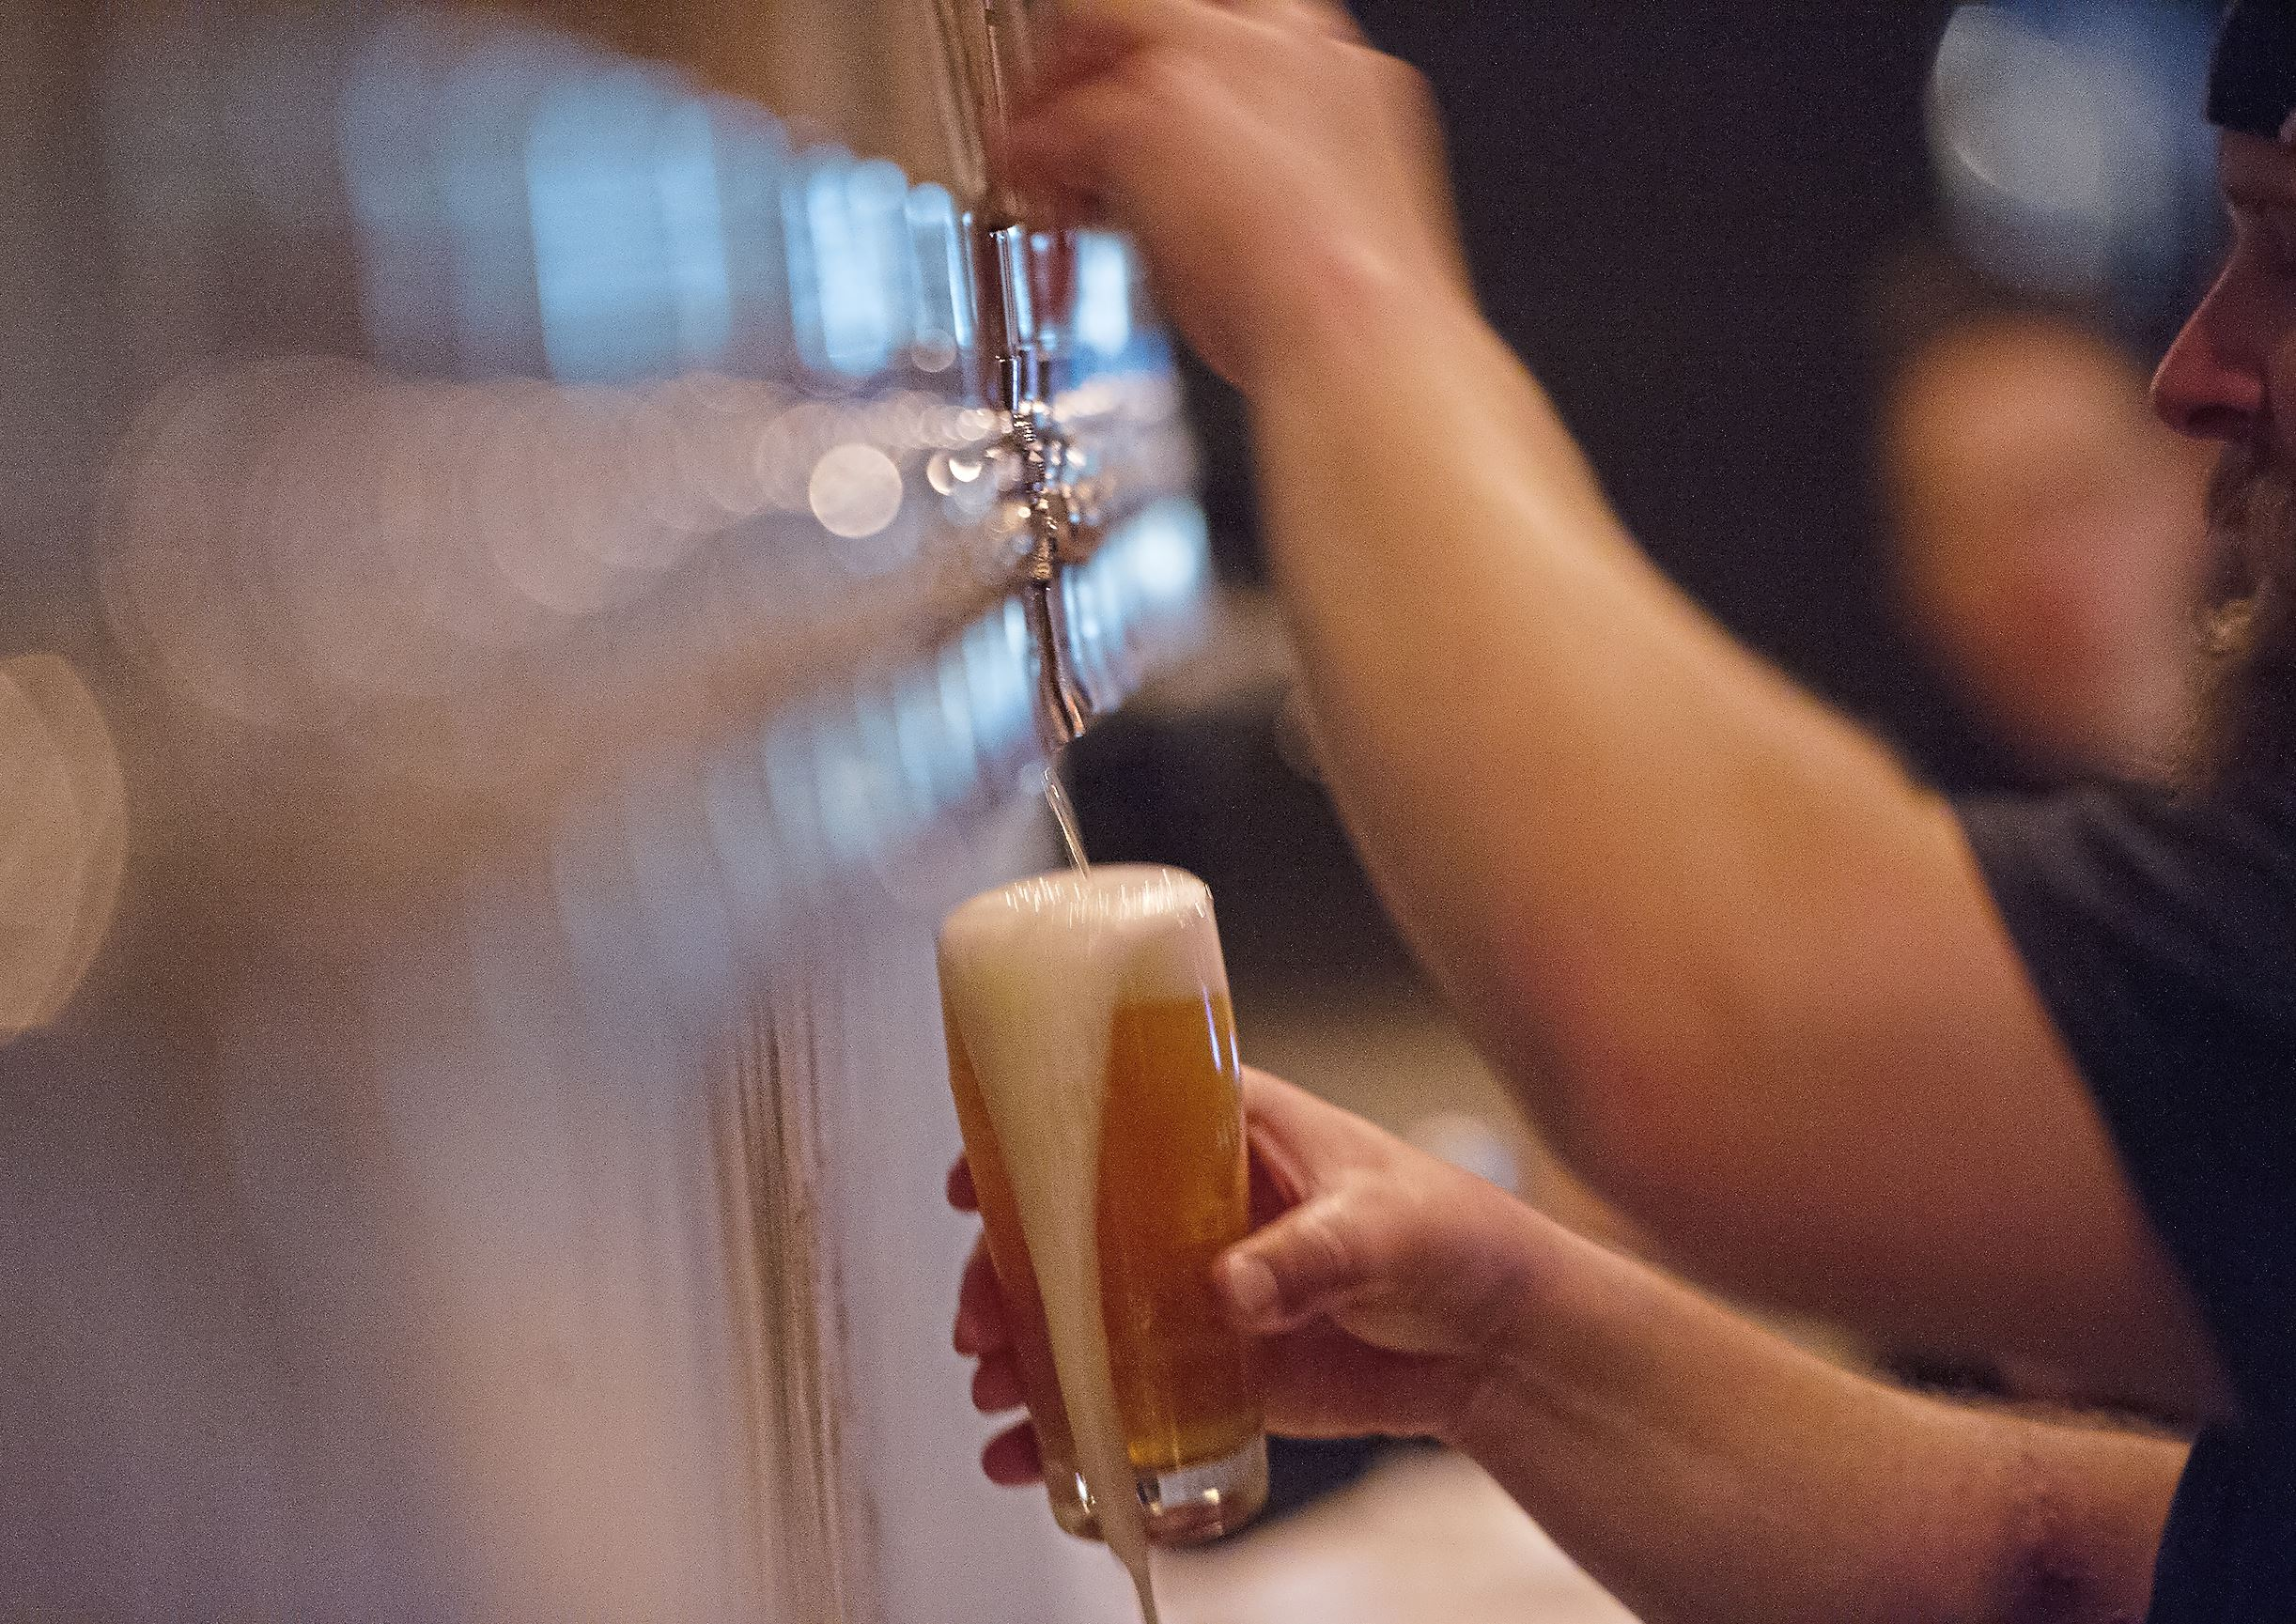 20170906rldHitchhiker01 Hitchhiker Brewing Co. celebrates the opening of its second location with a soft launch Wednesday in Sharpsburg.